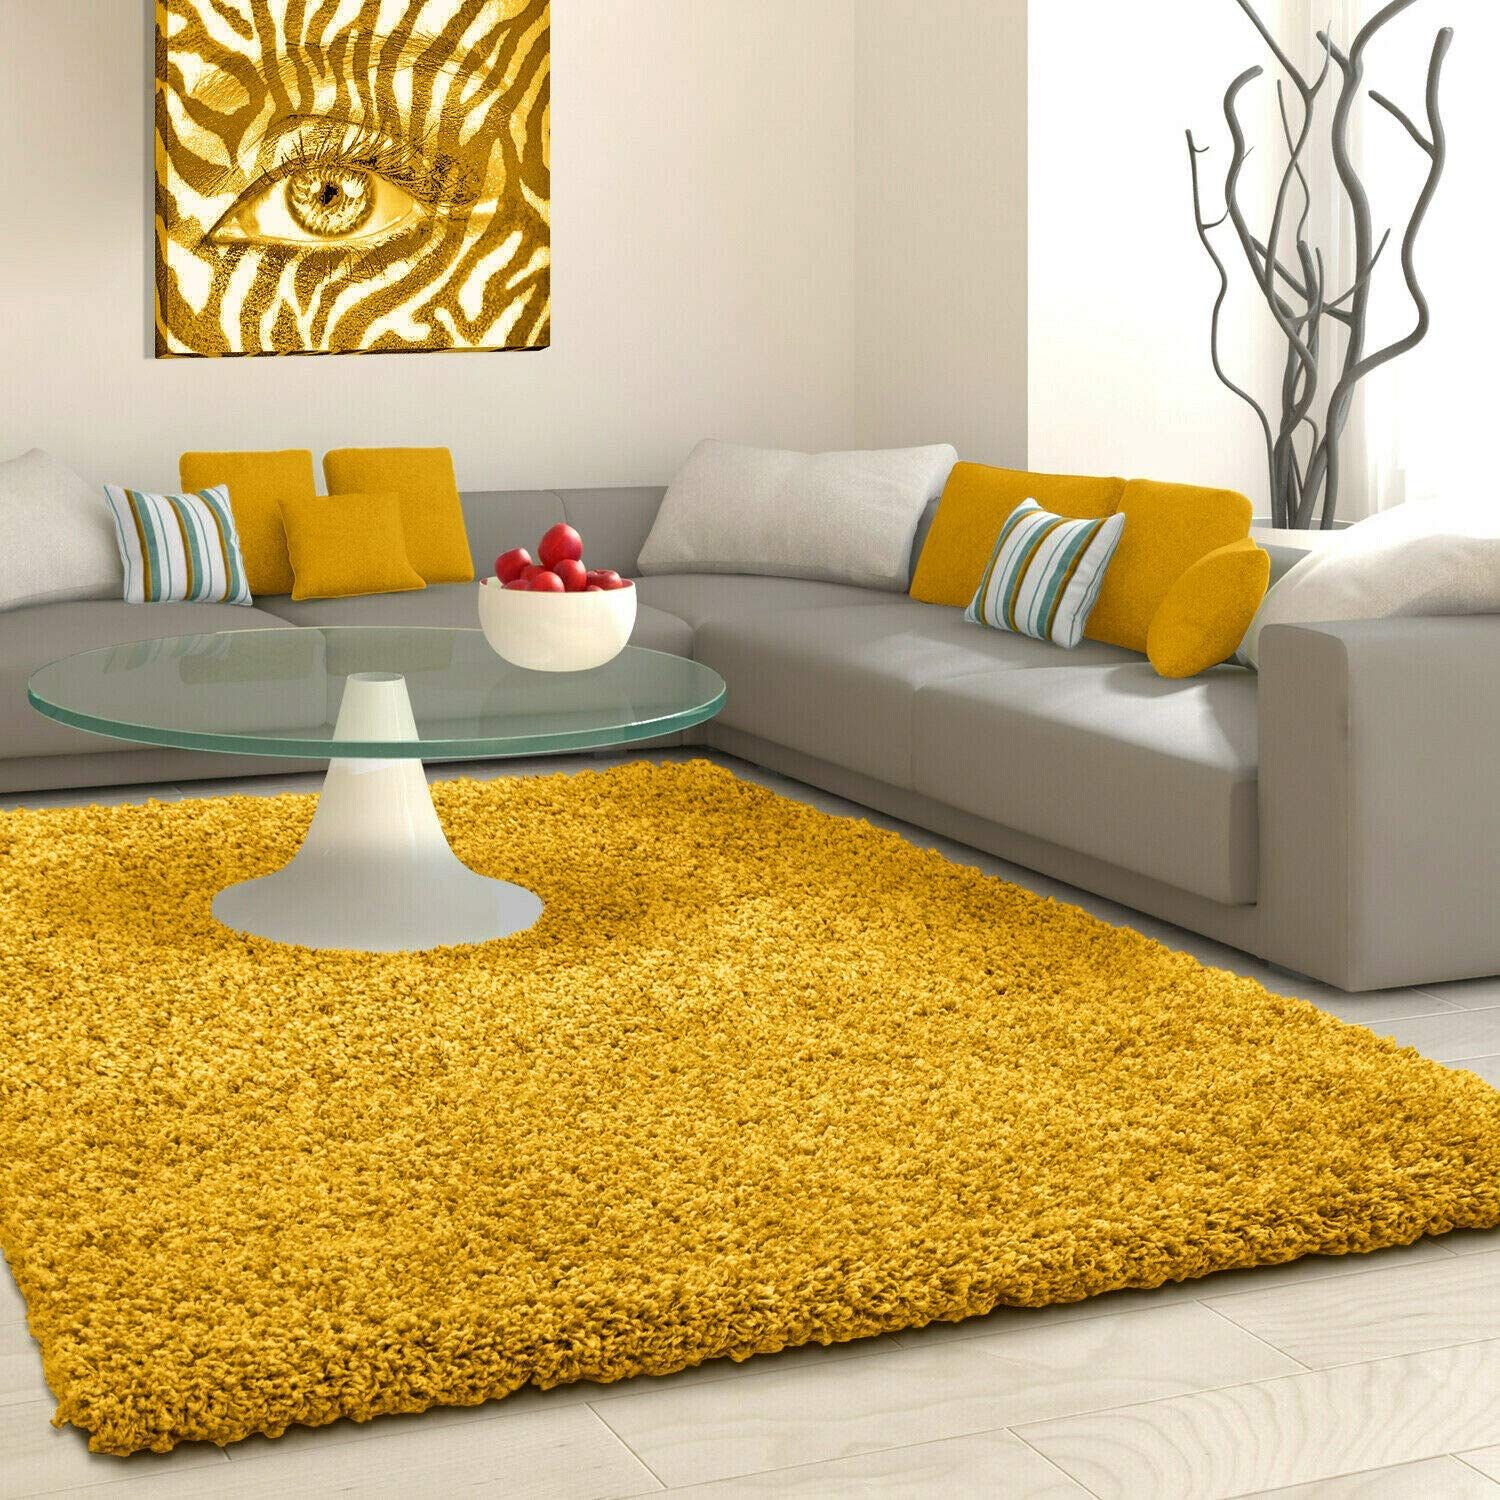 Shaggy Rug Rugs Living Room Large Soft Touch 5cm Thick Pile Modern Bedroom Living Room Area Rugs Non S In 2021 Rugs In Living Room Area Room Rugs Living Room Area Rugs Yellow rugs for living room